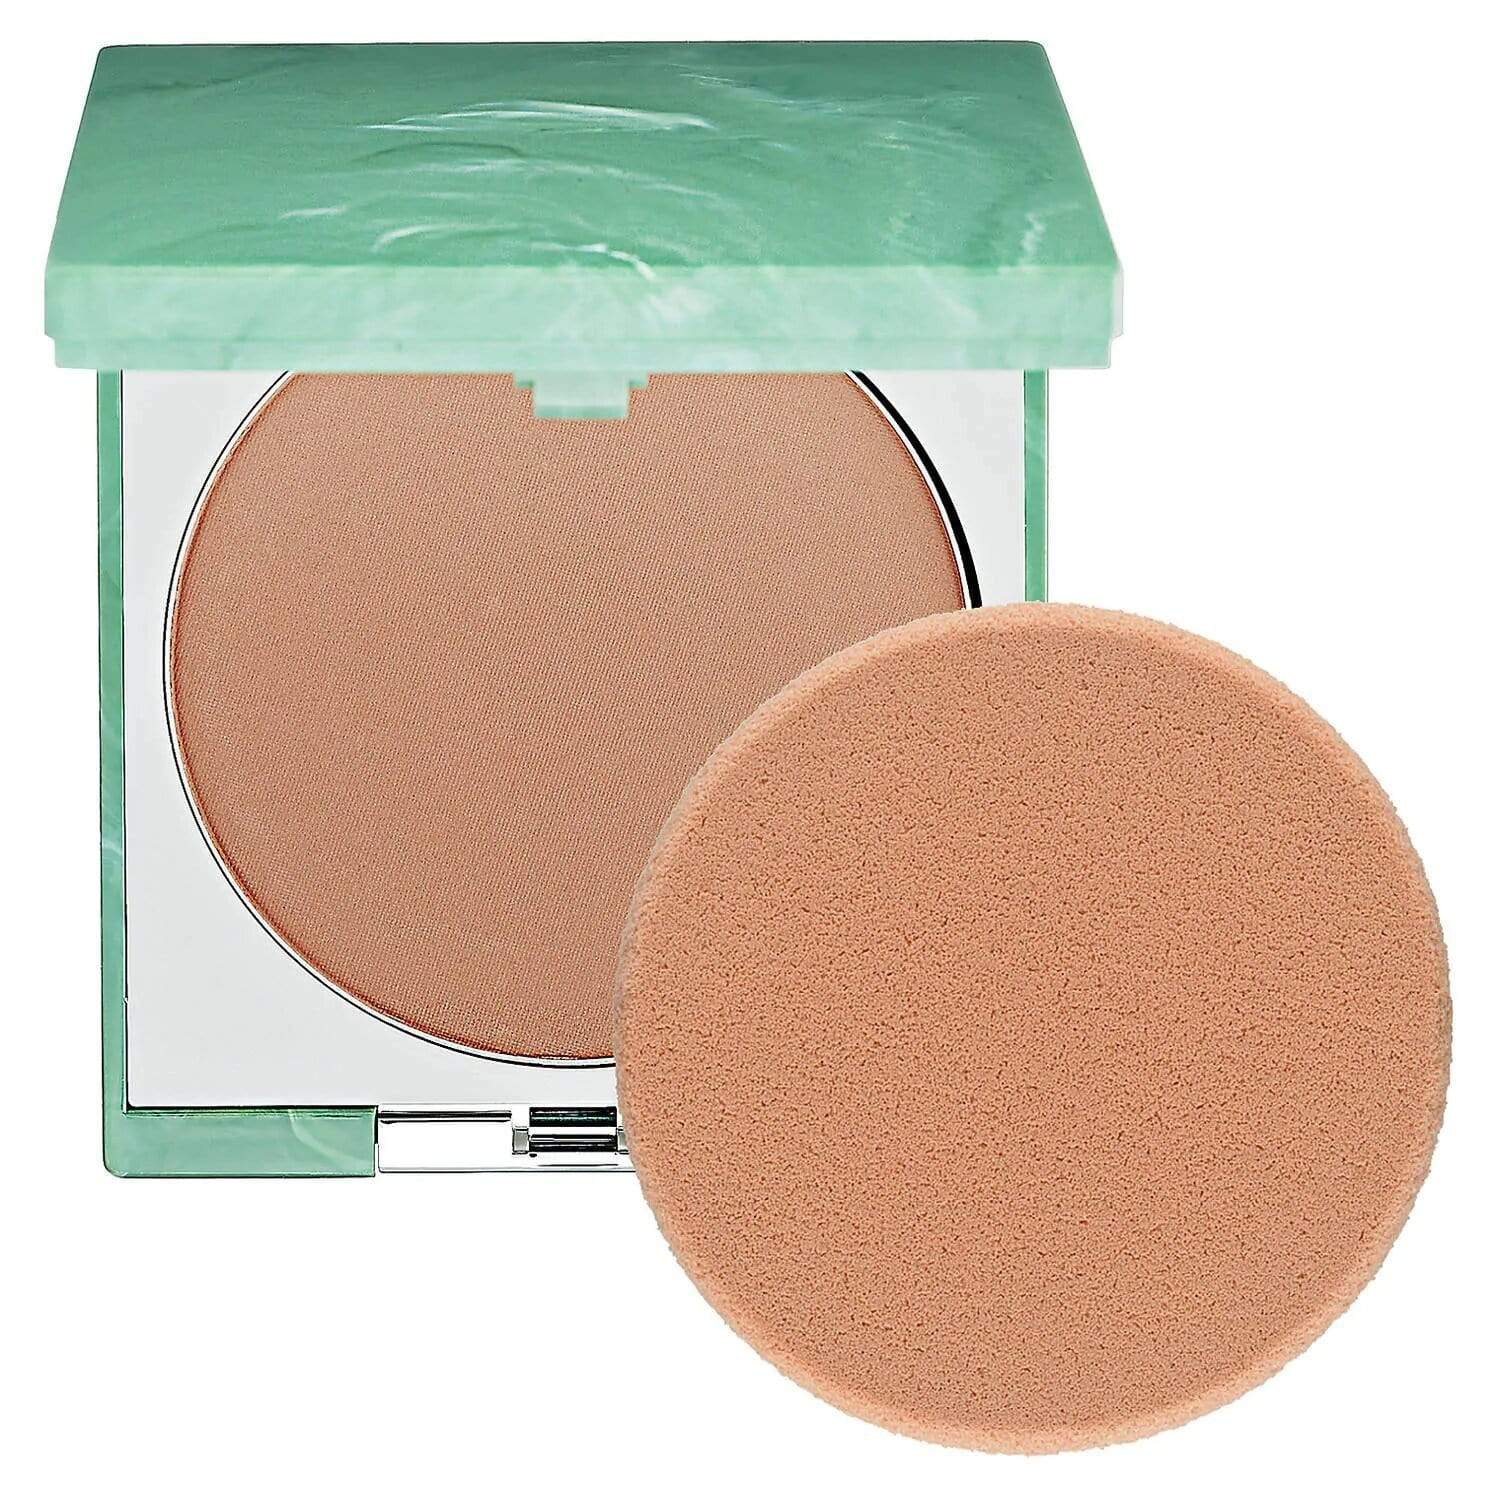 Clarins_Fond_de_Teint_Superpowder_Double_Face_matte_honey